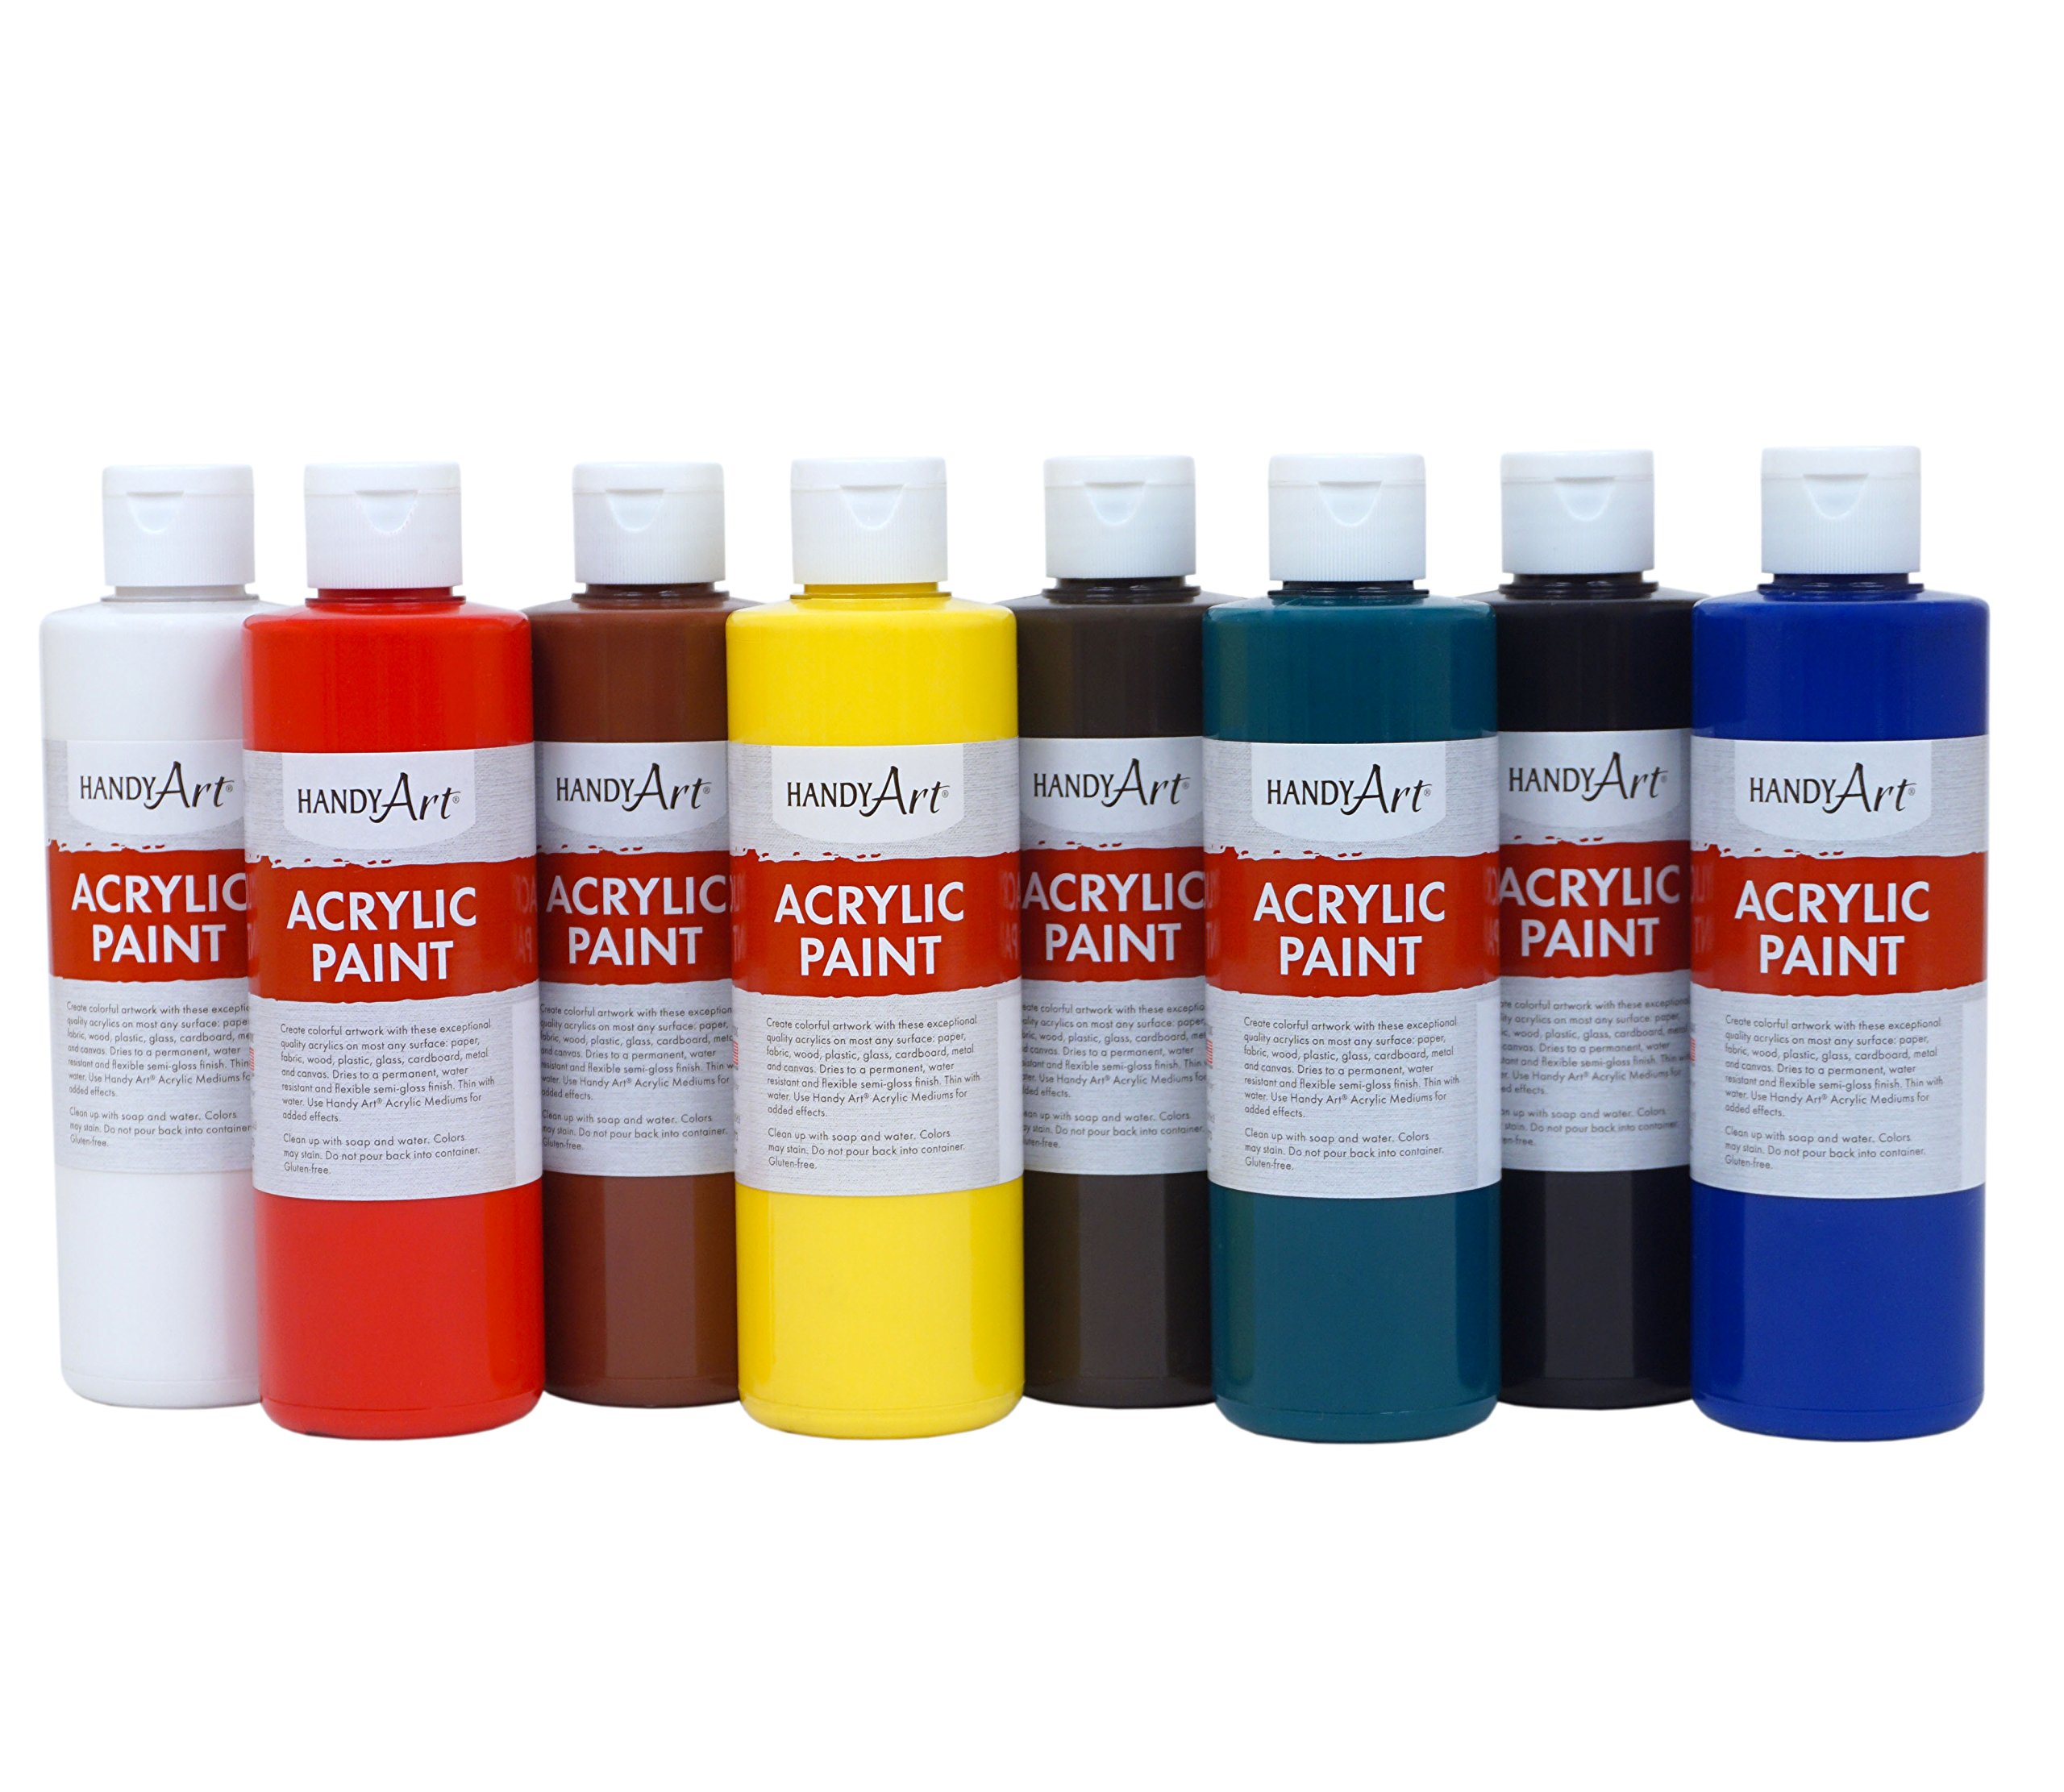 Handy Art 8 Color-8 Ounce Primary Acrylic Paint Set, Assorted